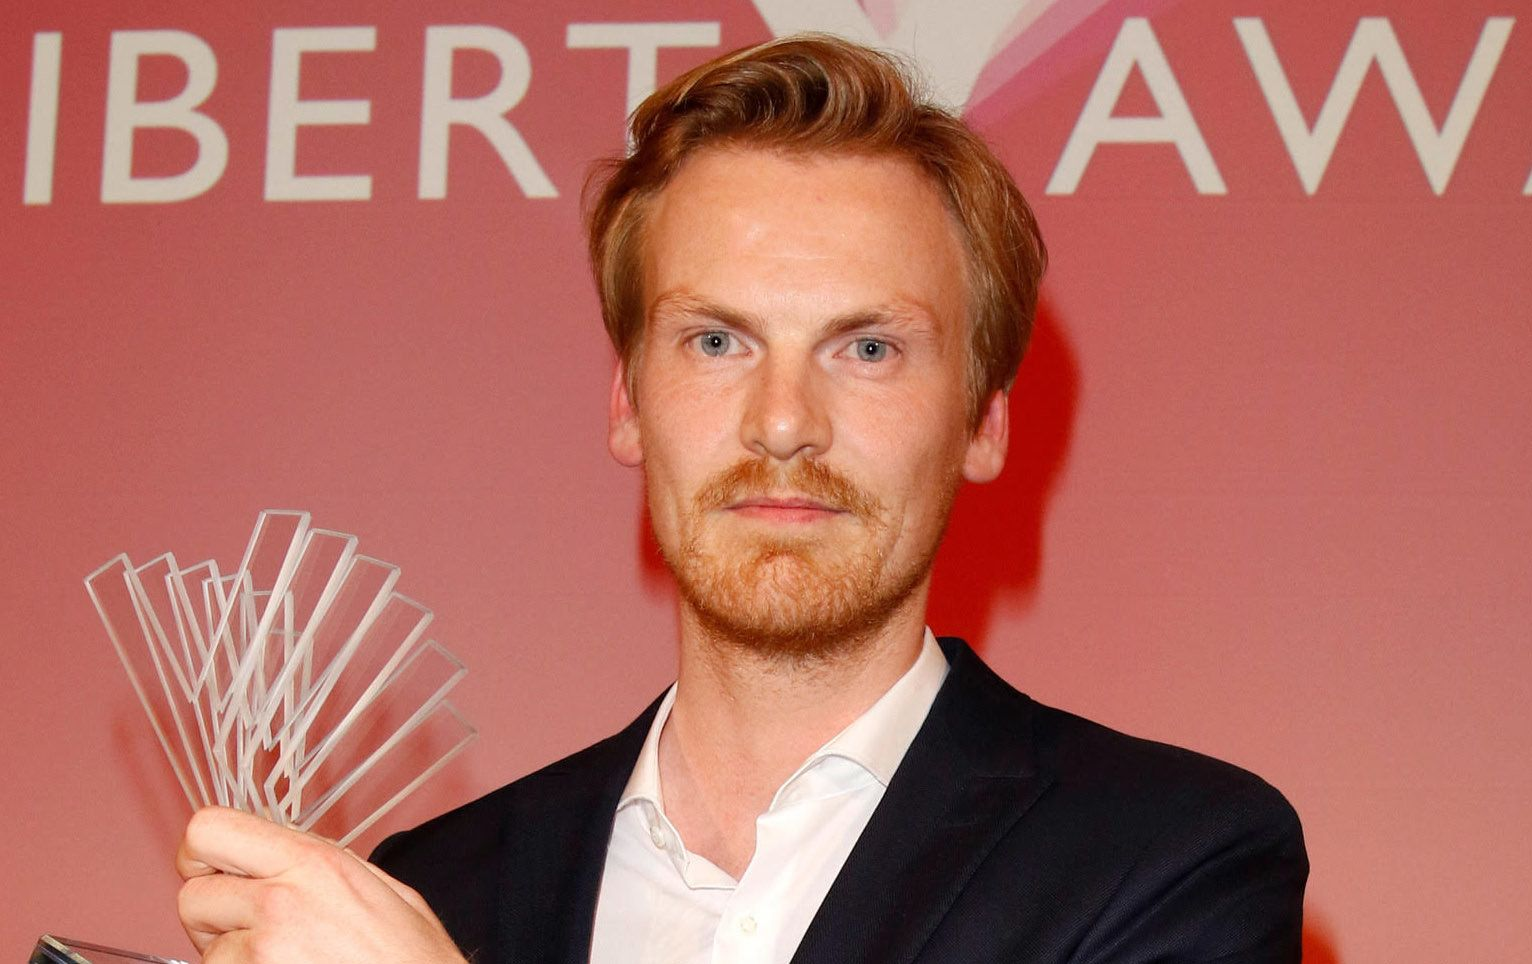 German journalist Claas Relotius holds his award trophy of the Reemtsma Liberty Award, a German journalist award, in Berlin, Germany, 22 March 2017.